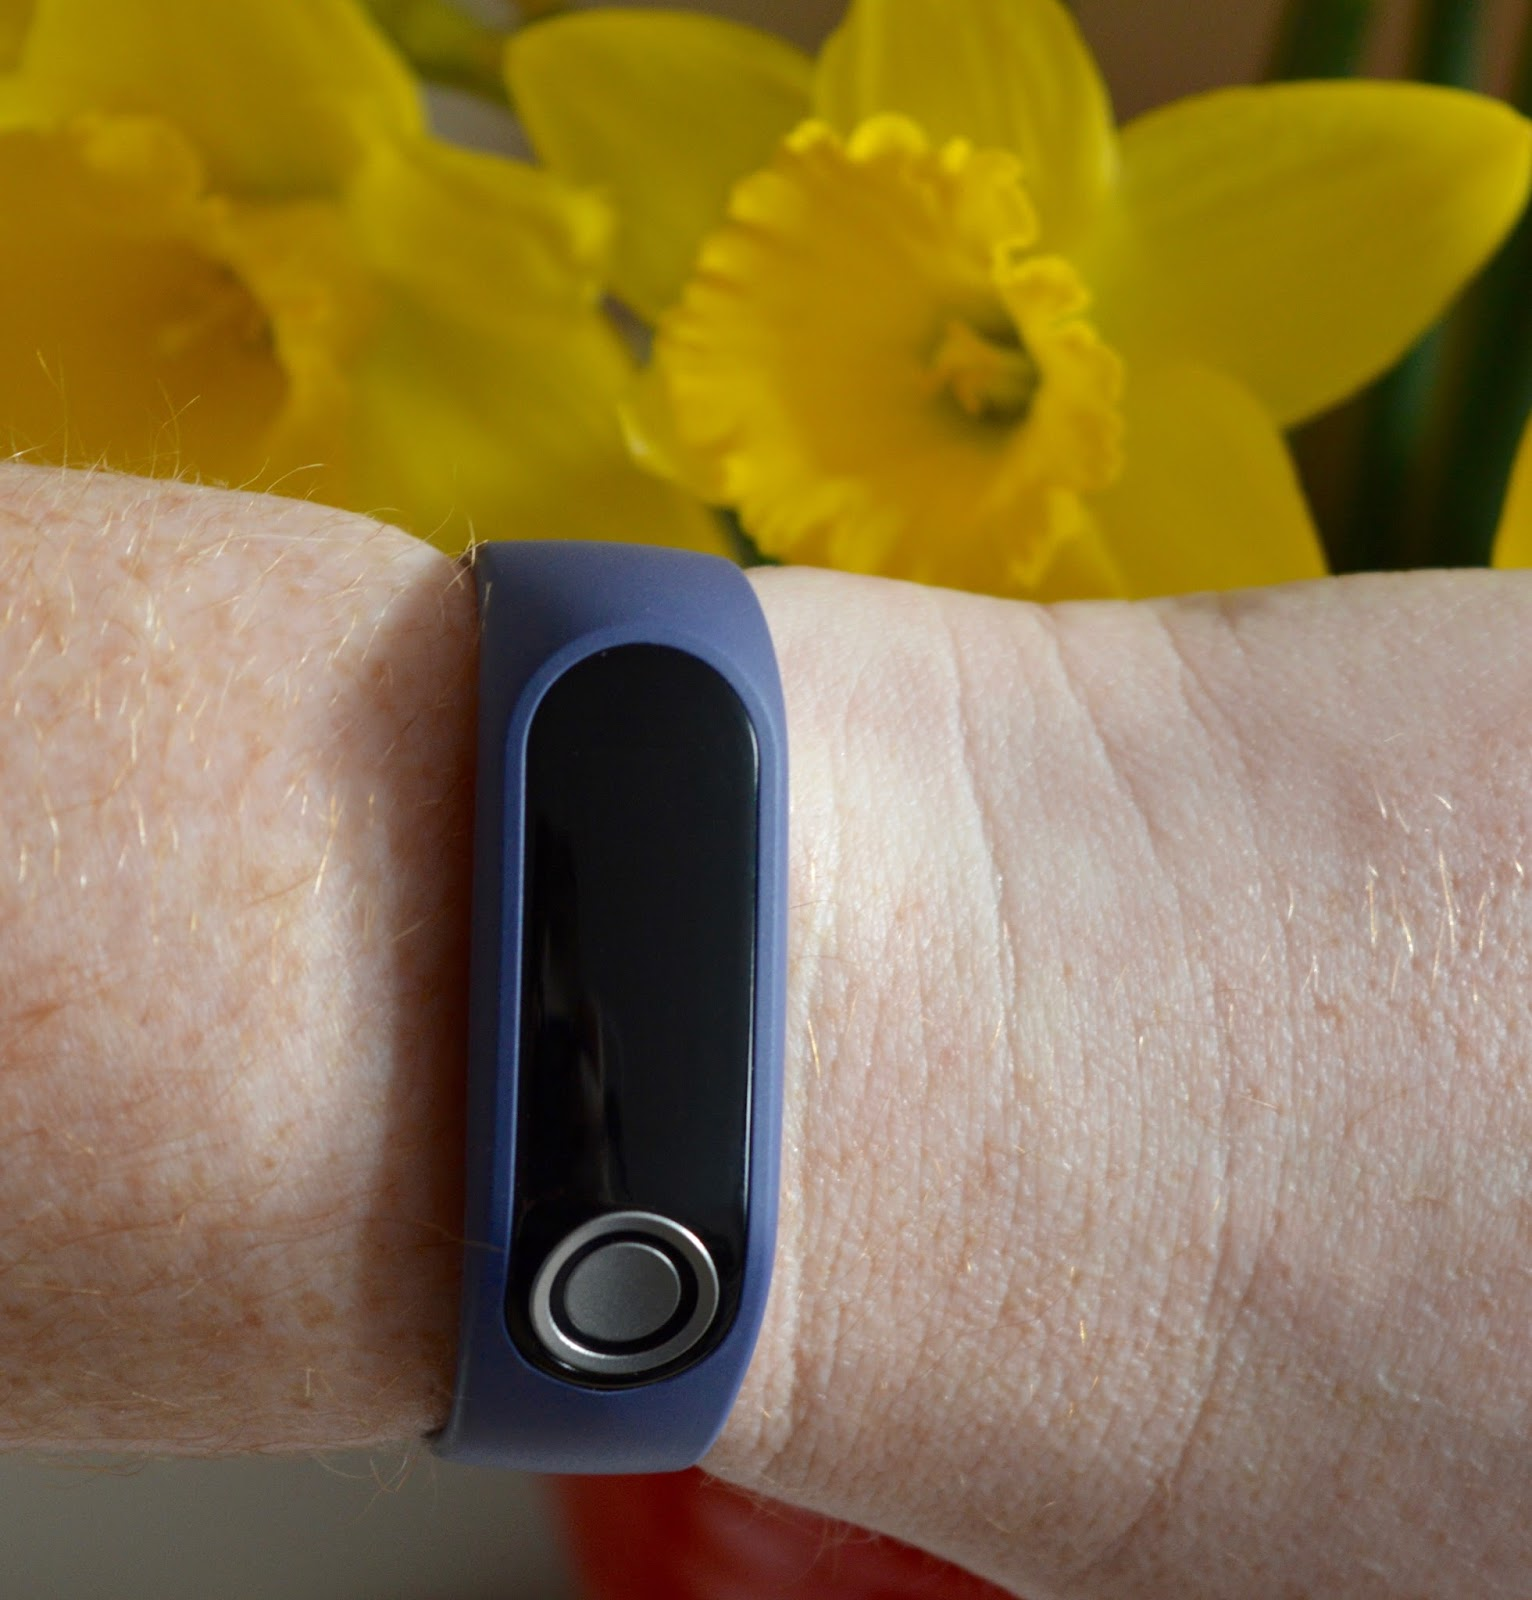 TomTom Touch Review | A Fitness Tracker that measures body fat composition, heart rate, steps, sleep & more - large tracker on wrist